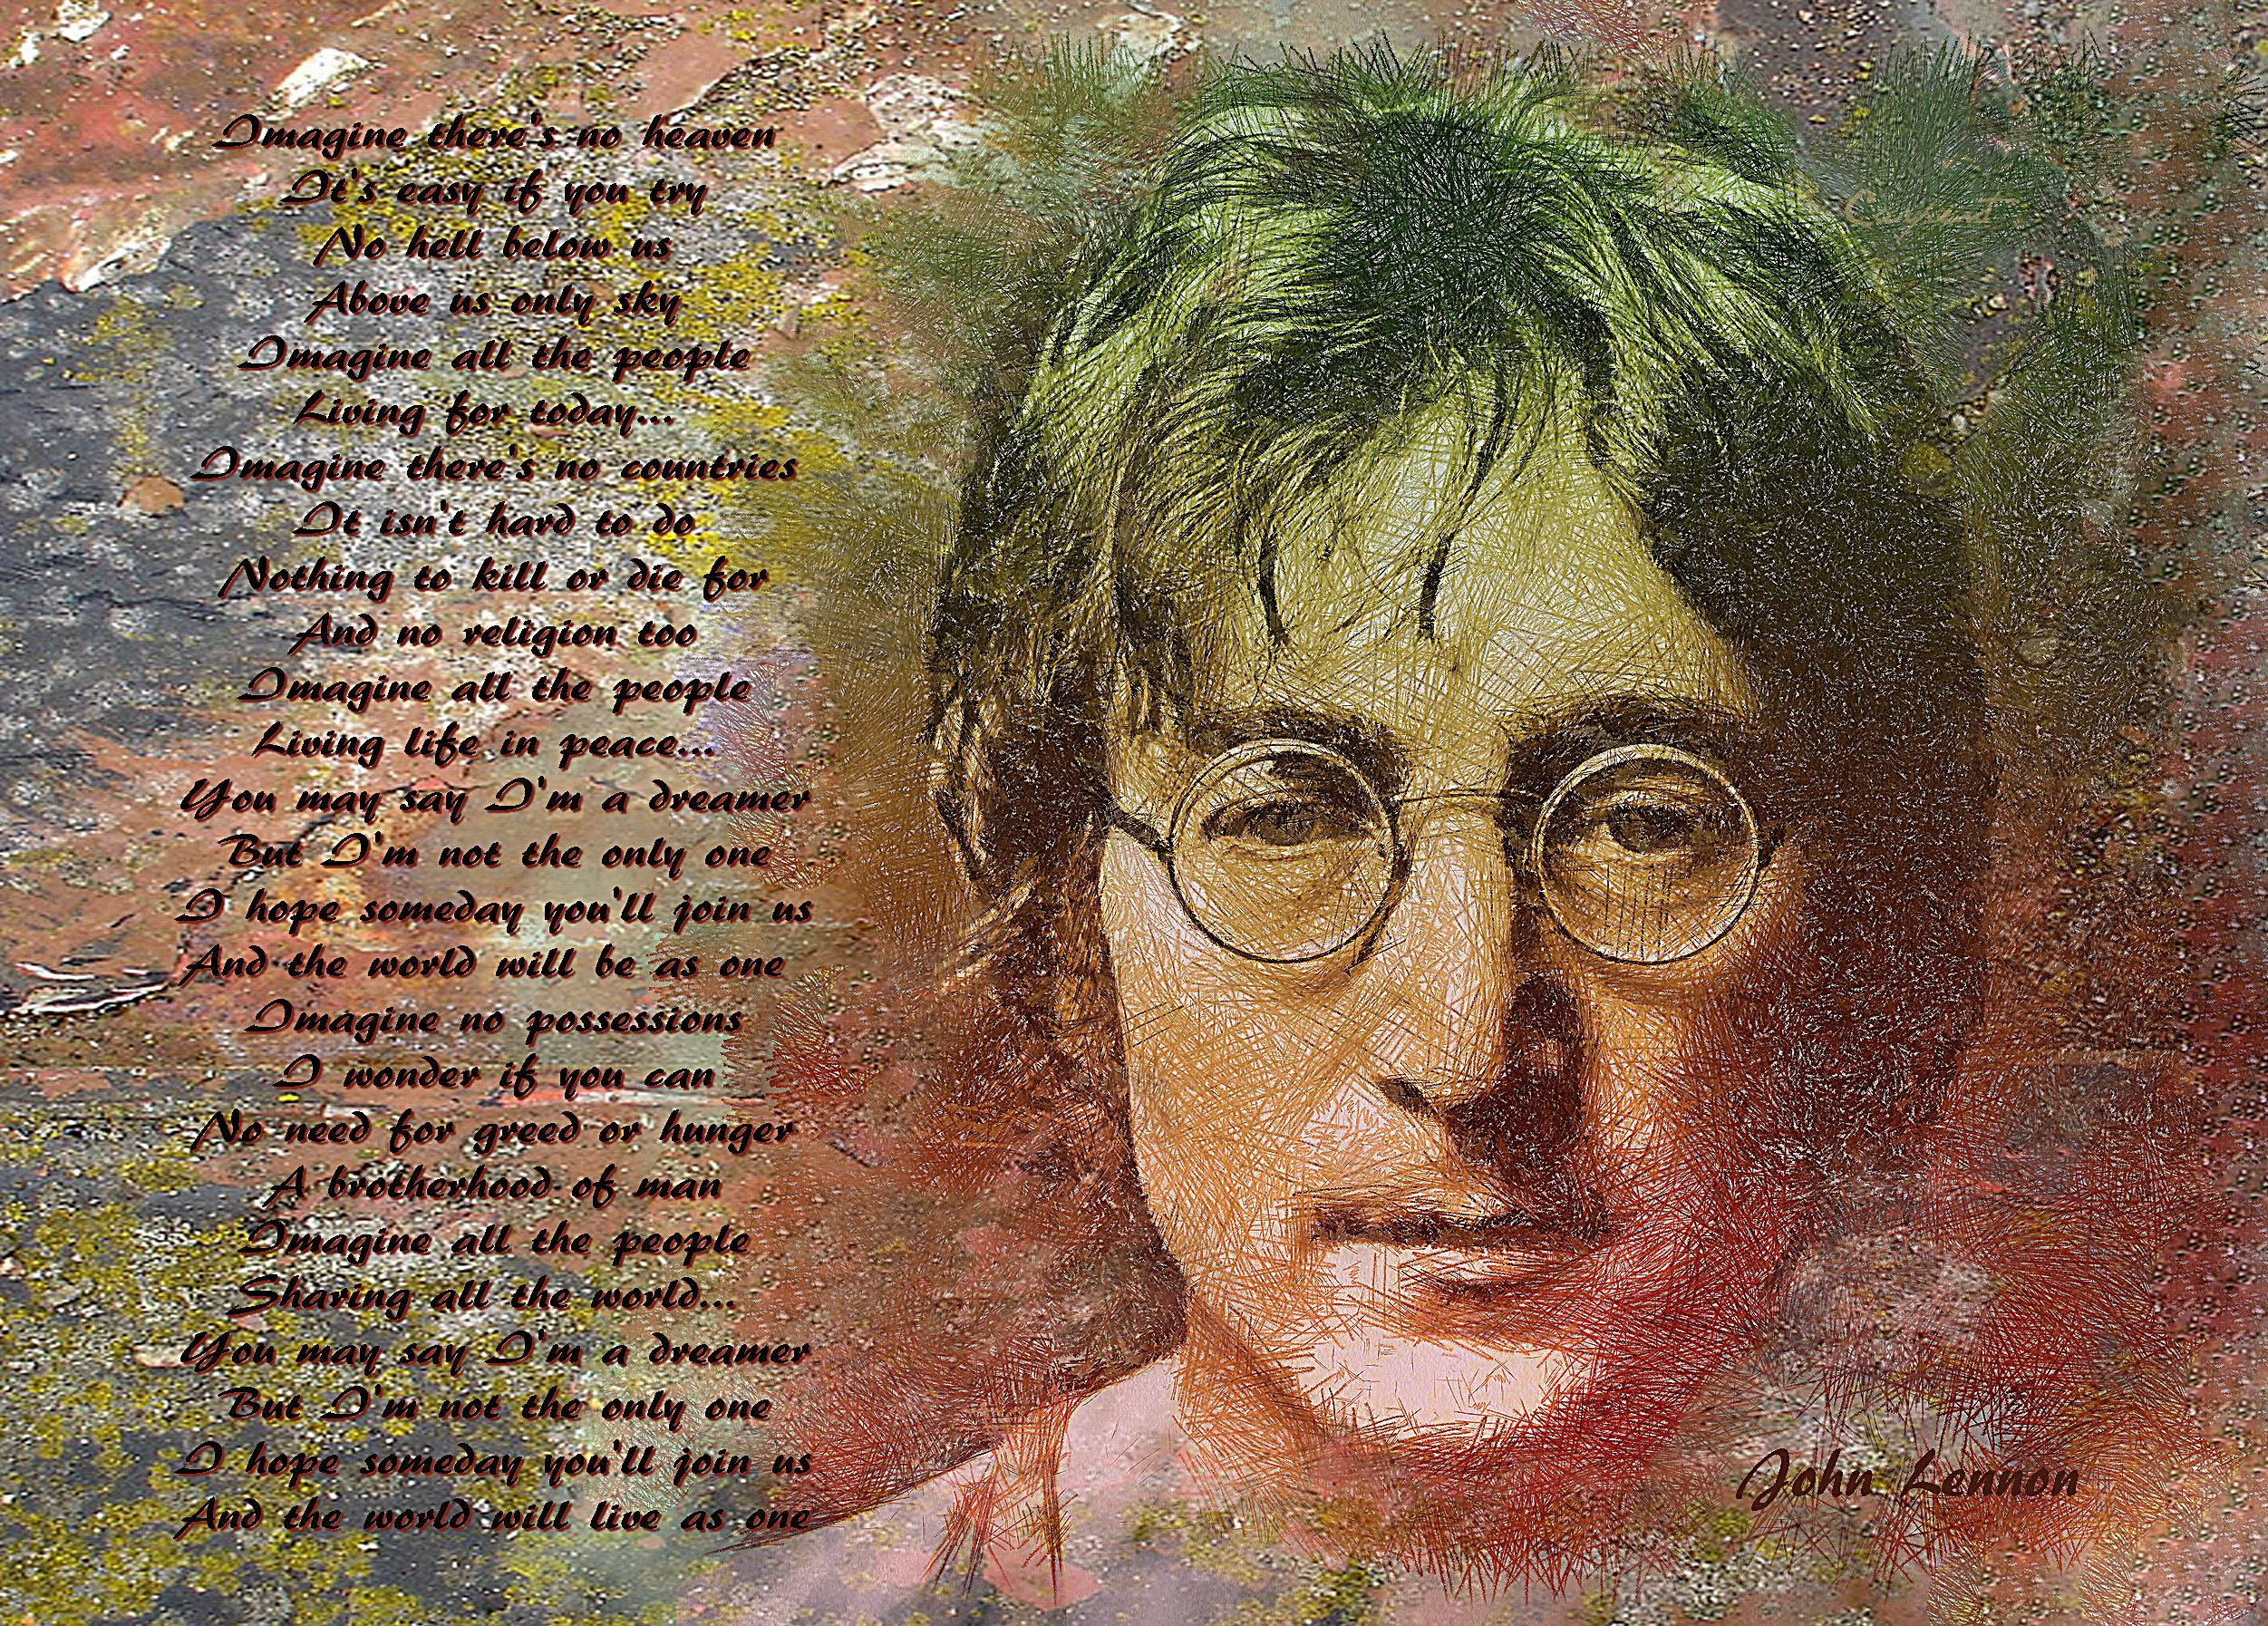 literary analysis of imagine by john lennon Lyrics to imagine song by john lennon: imagine there's no heaven it's easy if you try no hell below us above us only sky imagine all the pe.